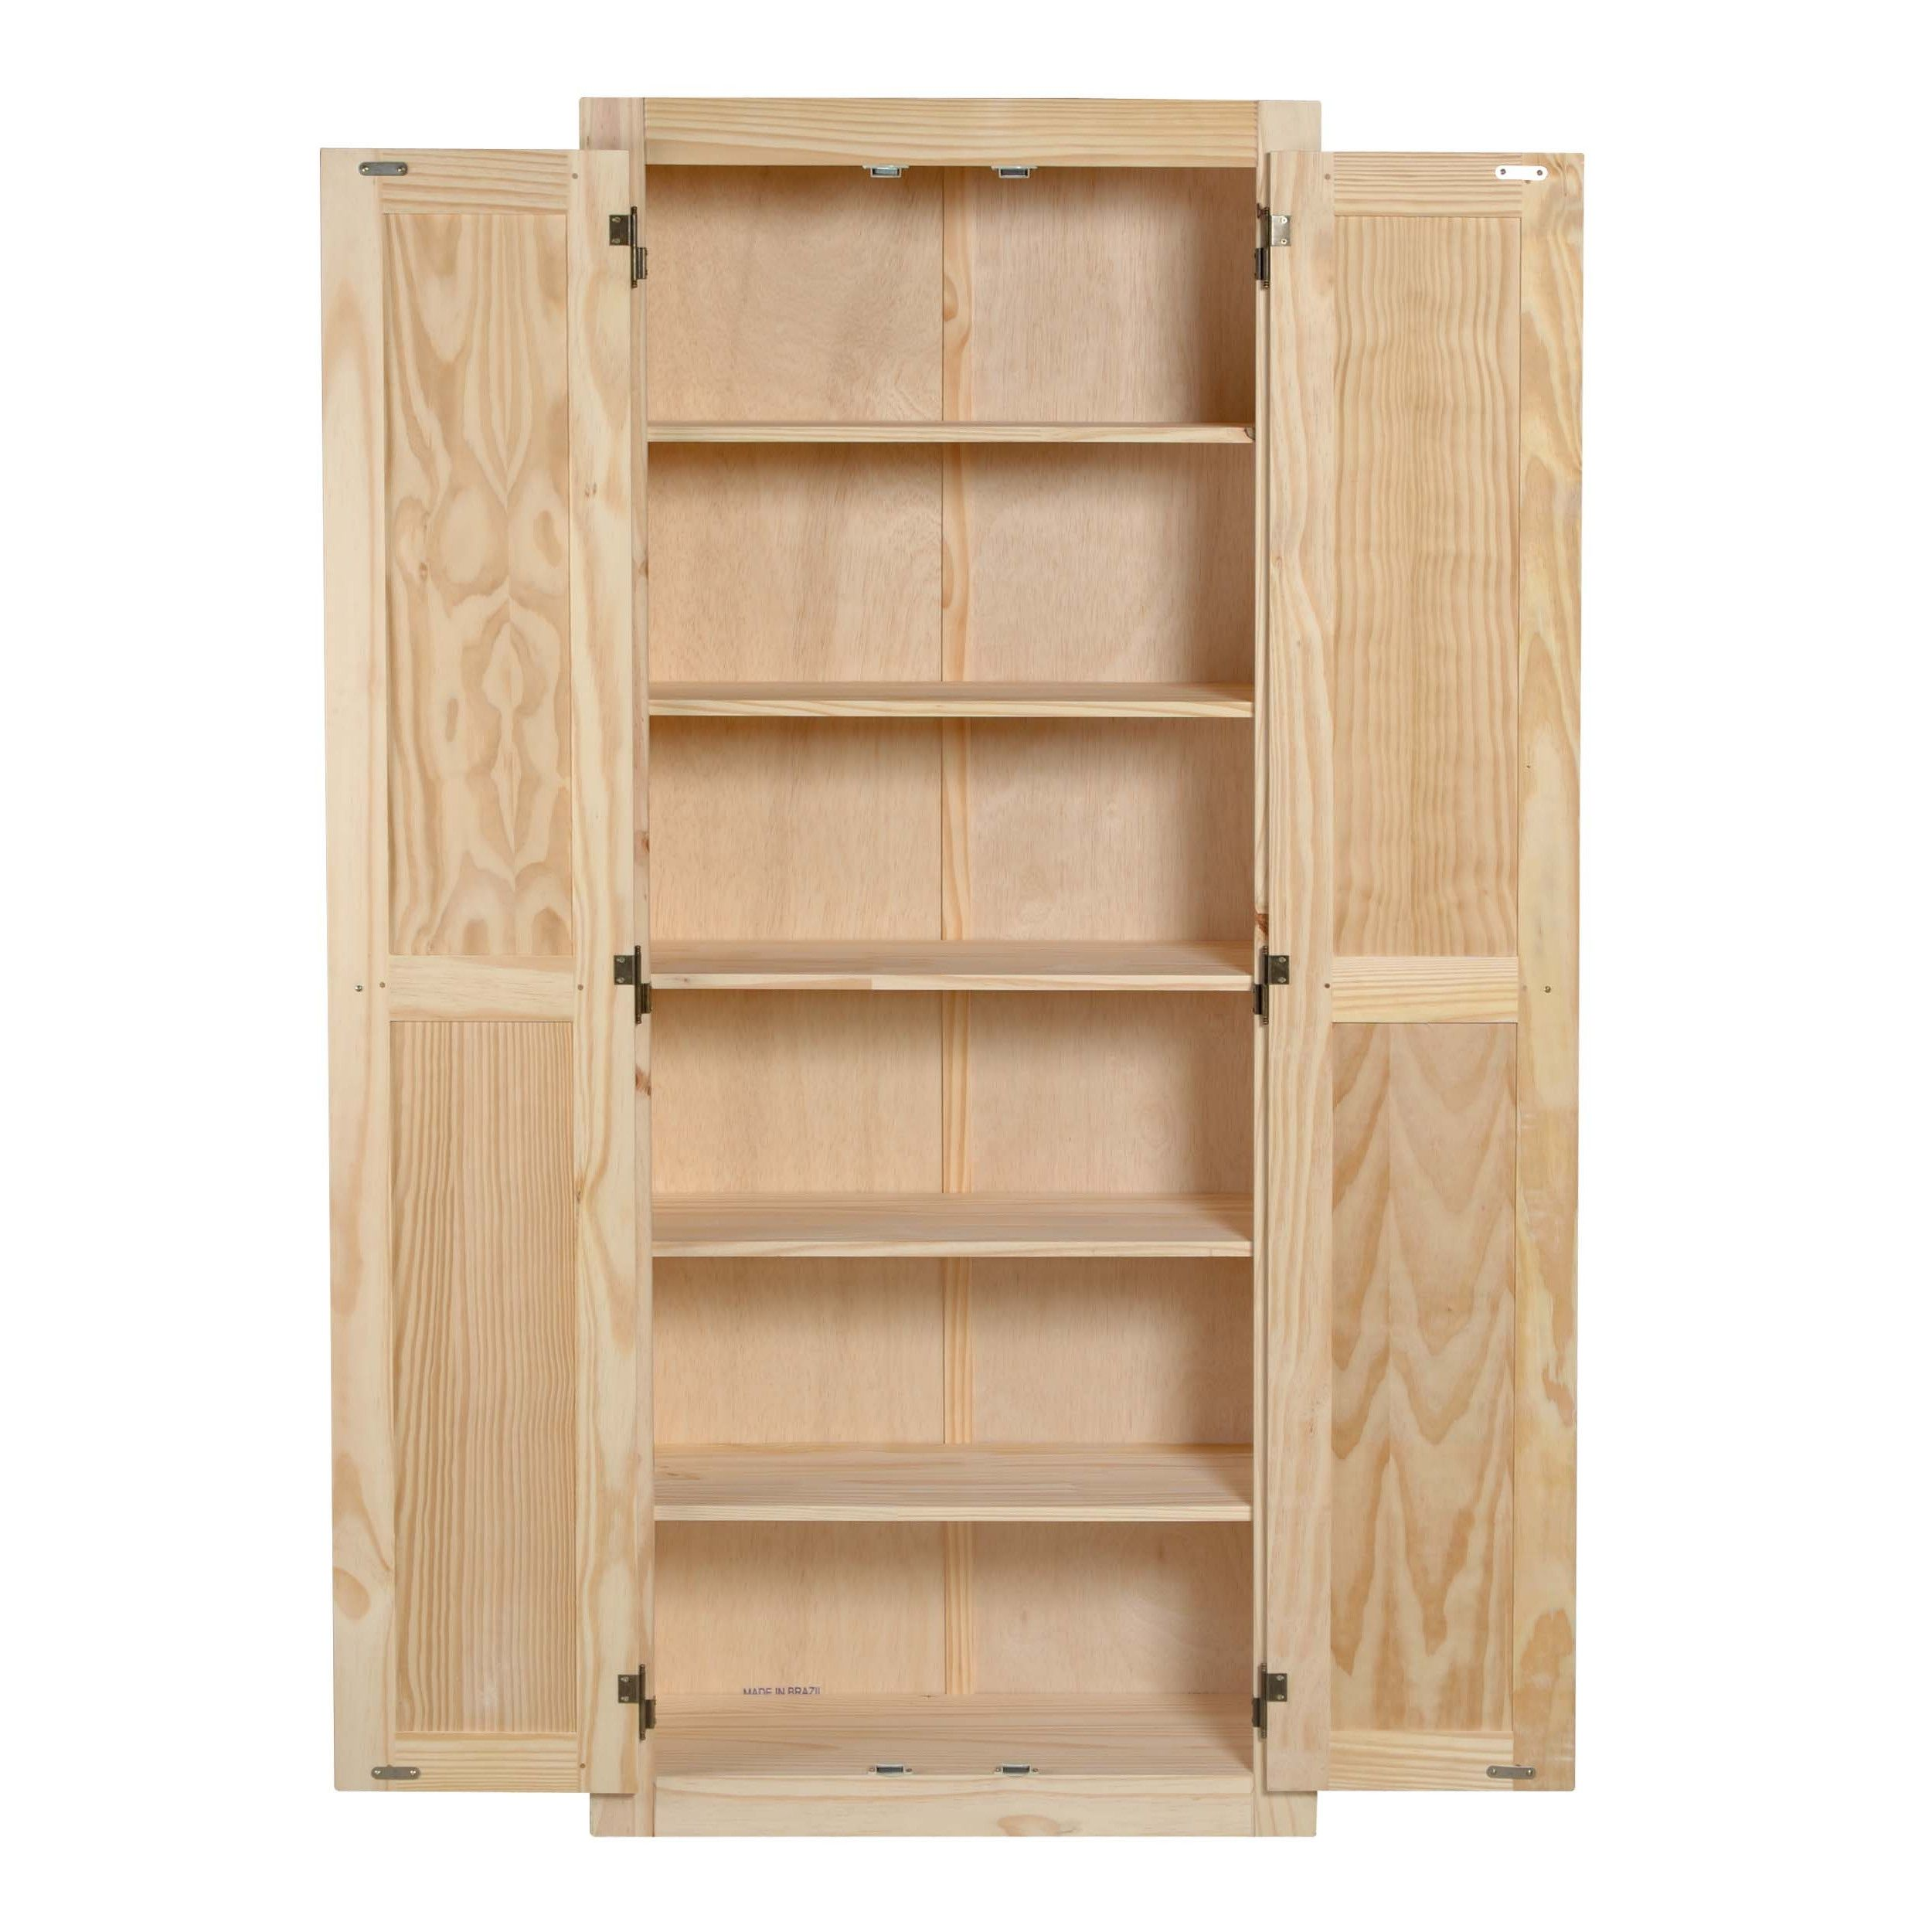 unfinished pine kitchen cabinets exhaust fan pantry wood shelf and shelves